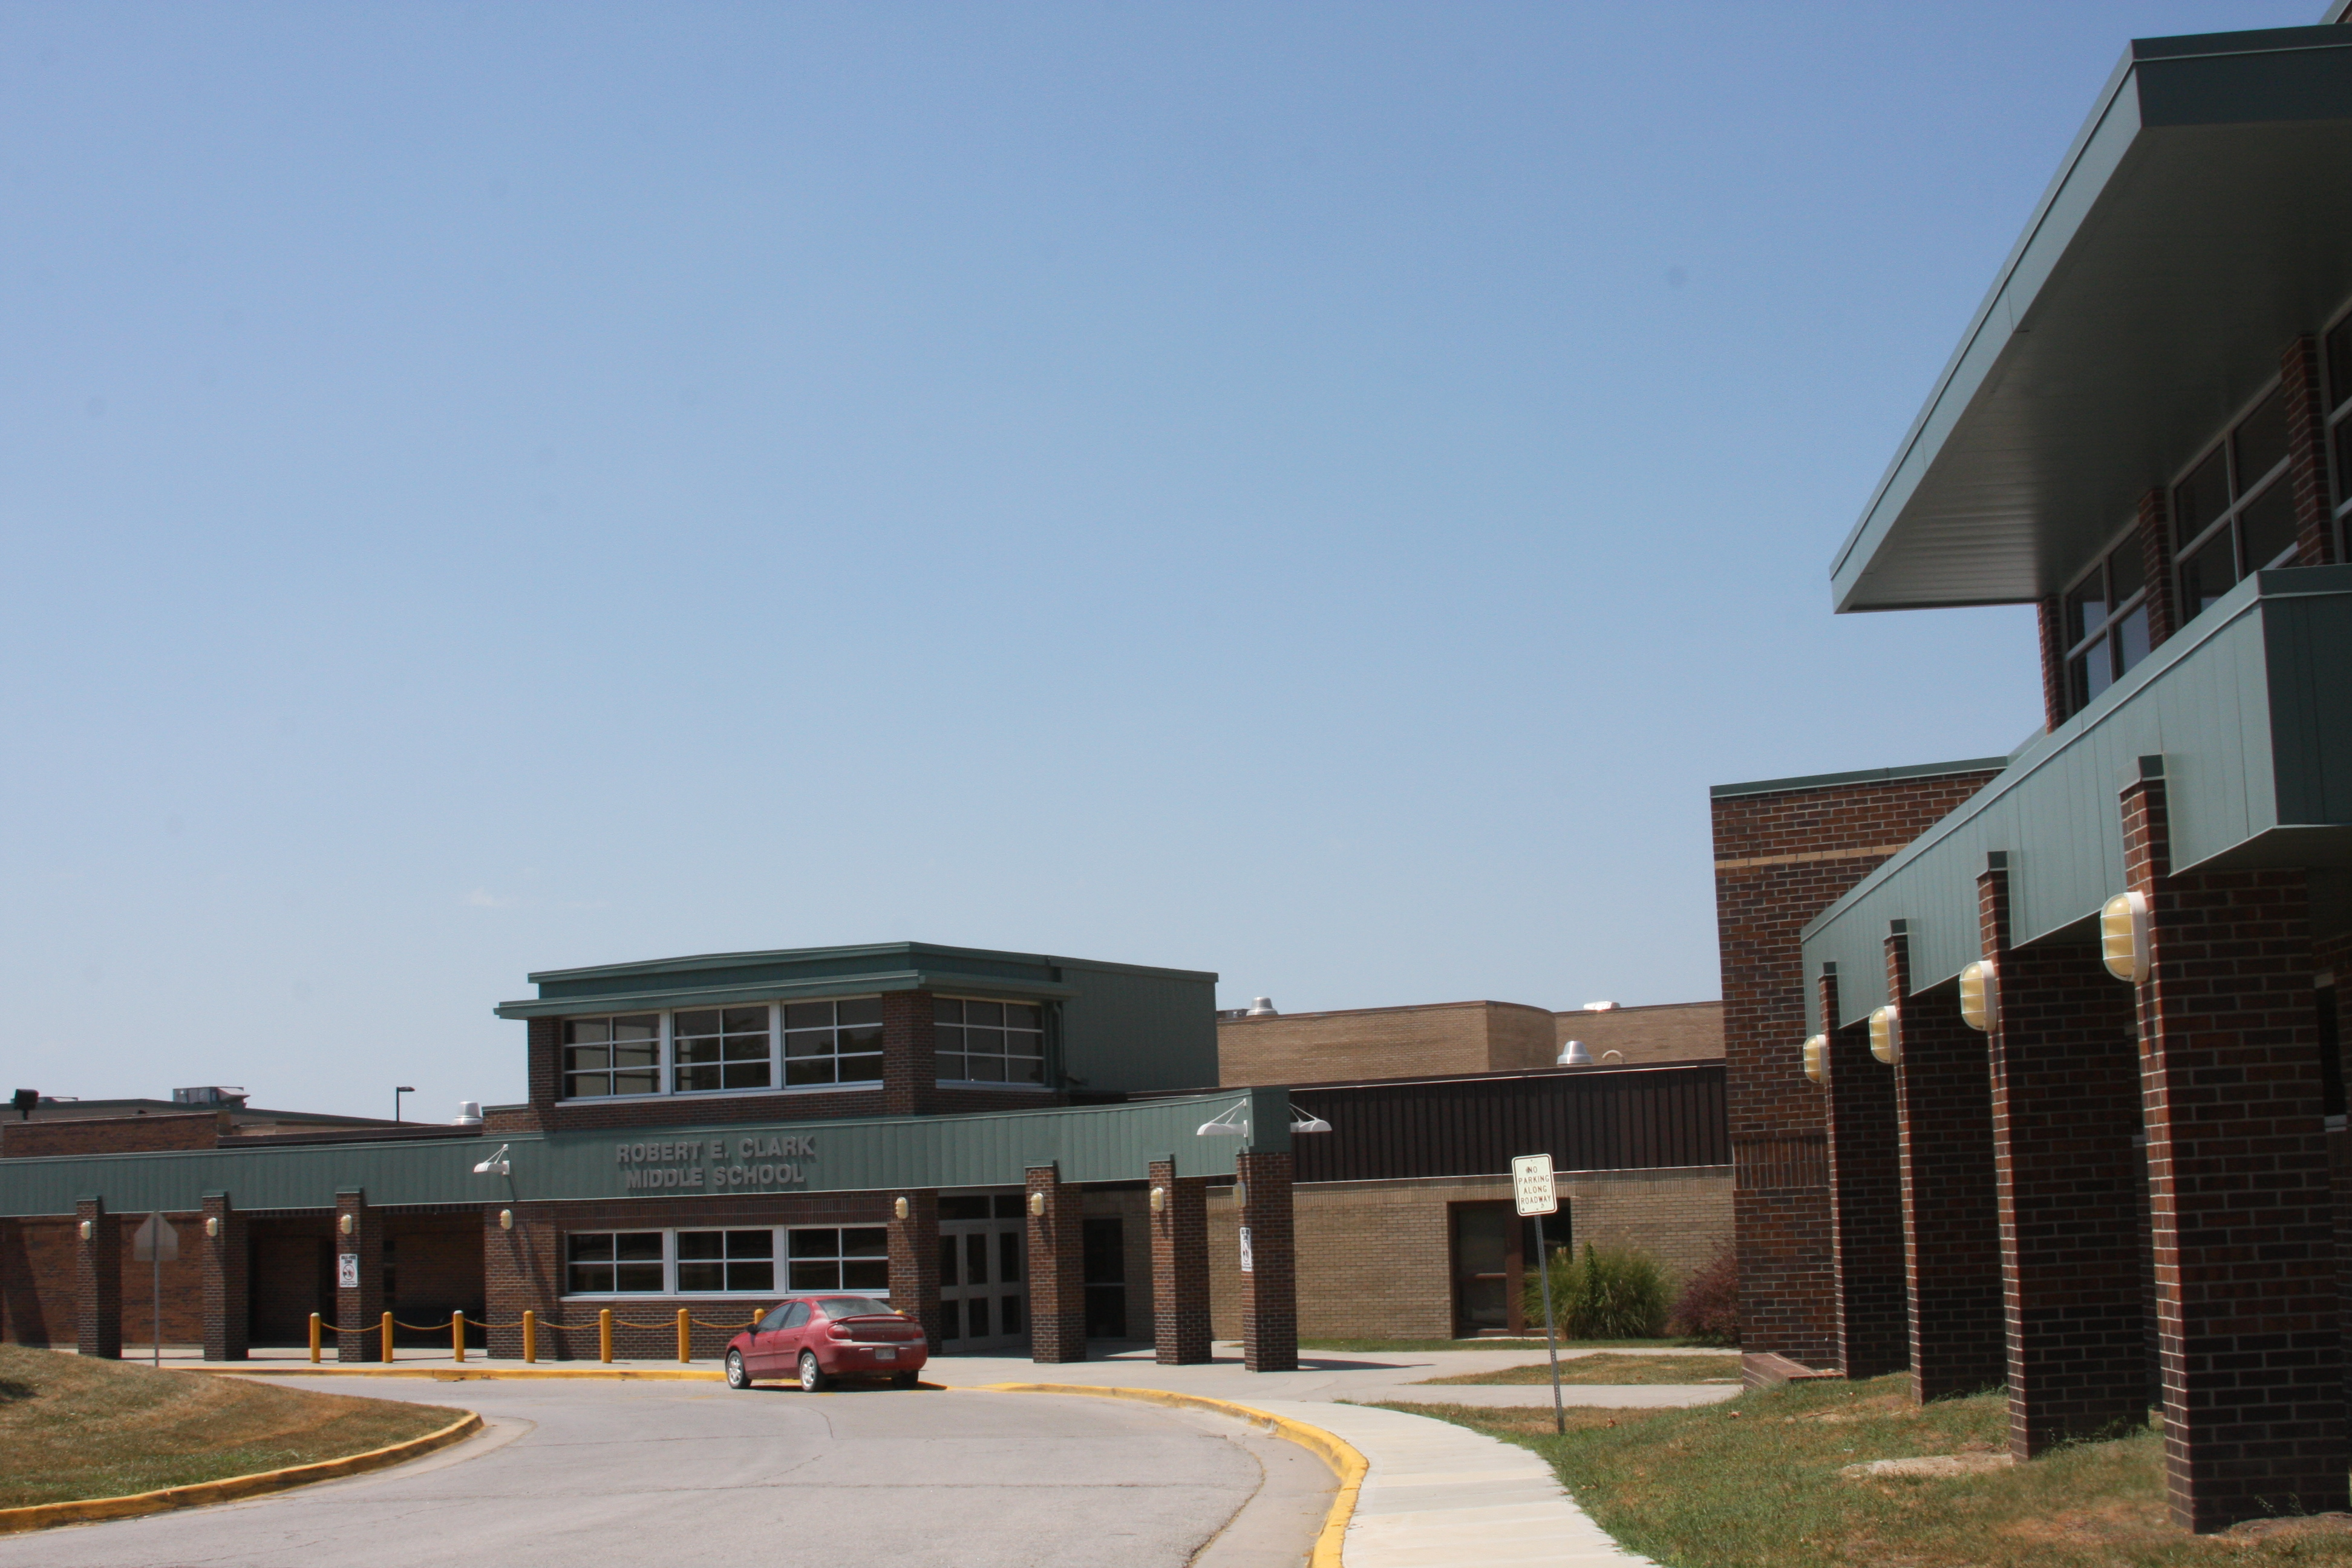 Robert E. Clark Middle School